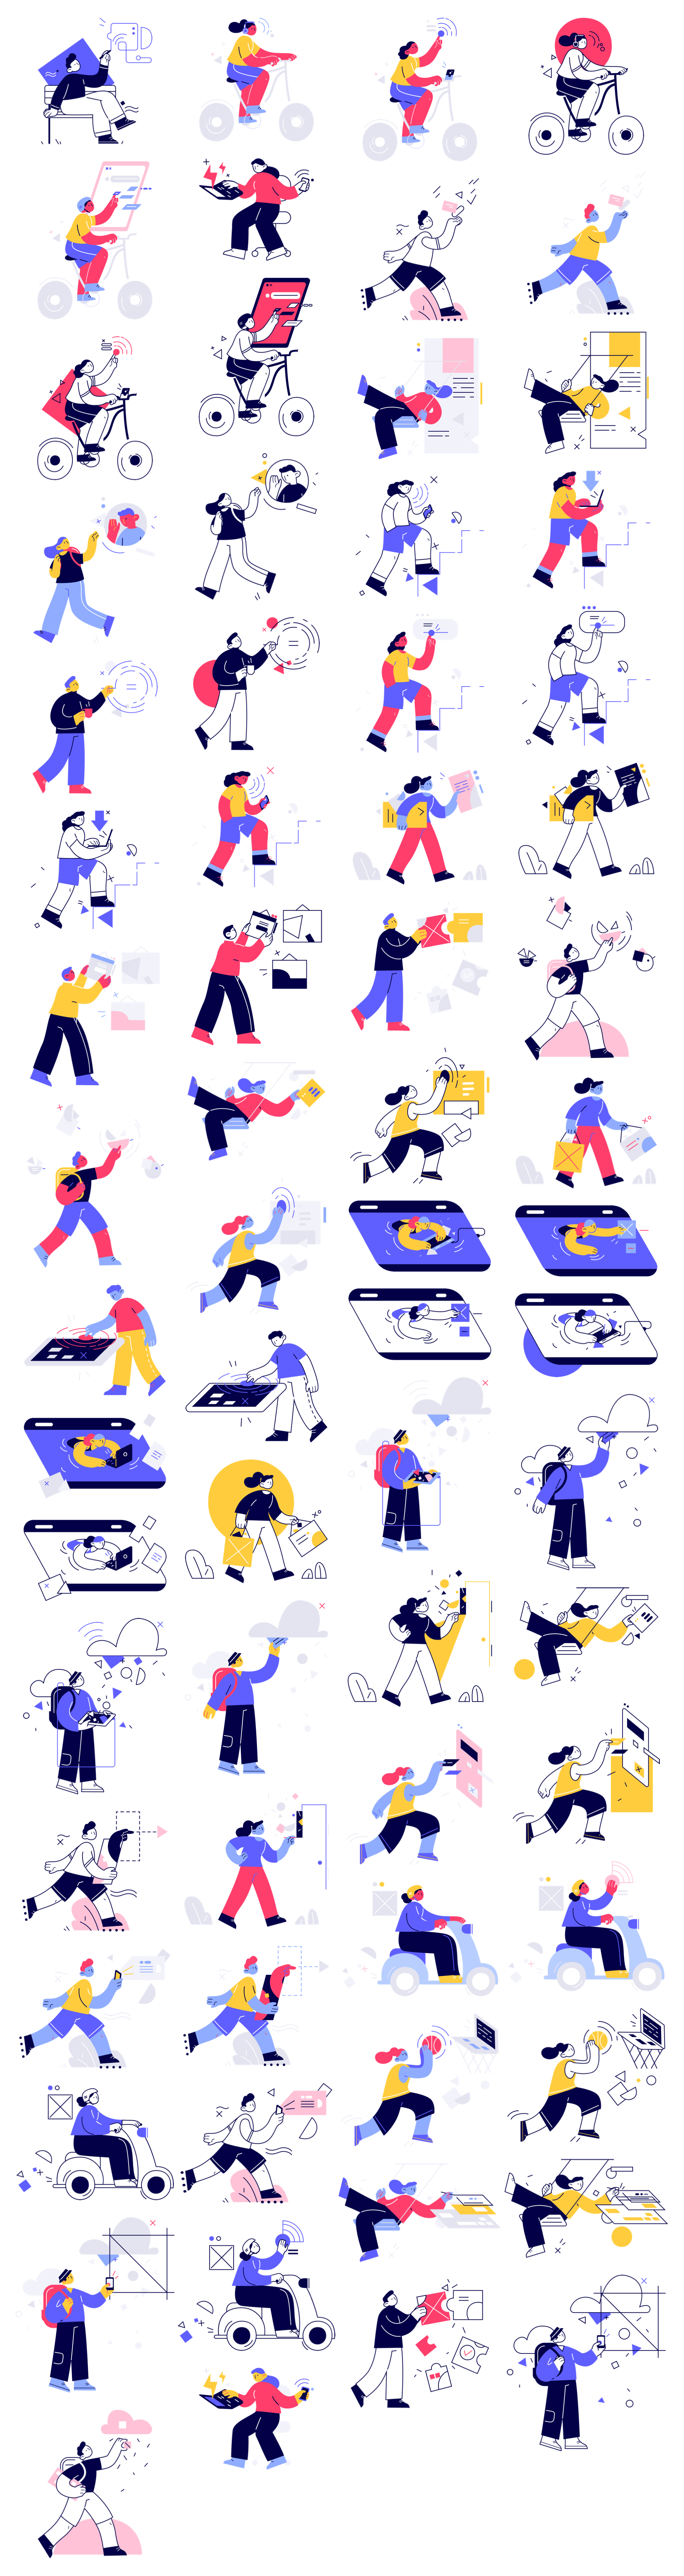 Control Free Illustrations - Control is a stylish illustration library with 18 characters with 3 different action scenes for each illustration. All illustrations are available in 2 styles: solid and linear. Download PNG files for free or purchase the pack and get access to fully editable AI & SVG files.